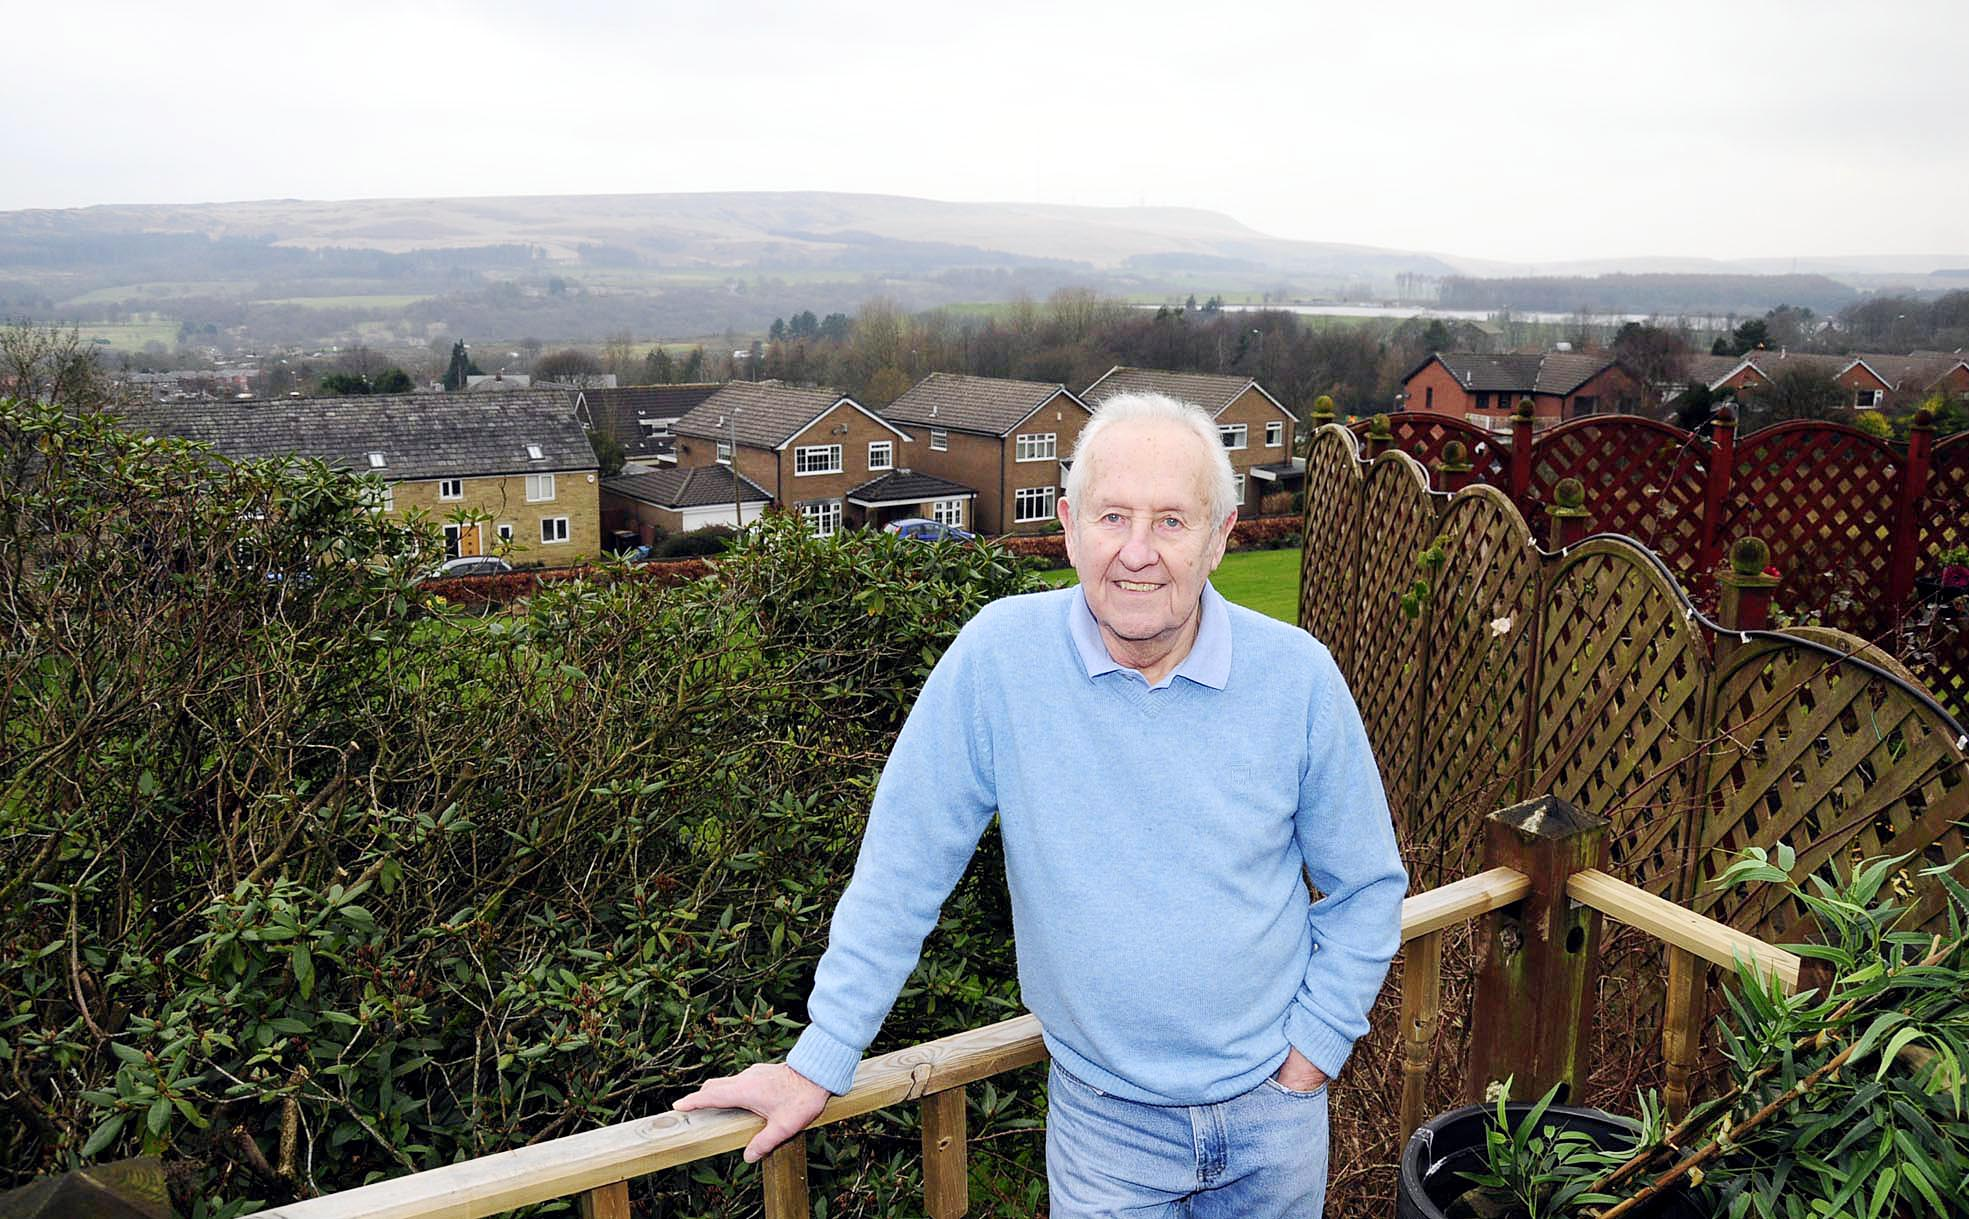 Brian Caswell enjoying the view from his new home on the outskirts of Bolton